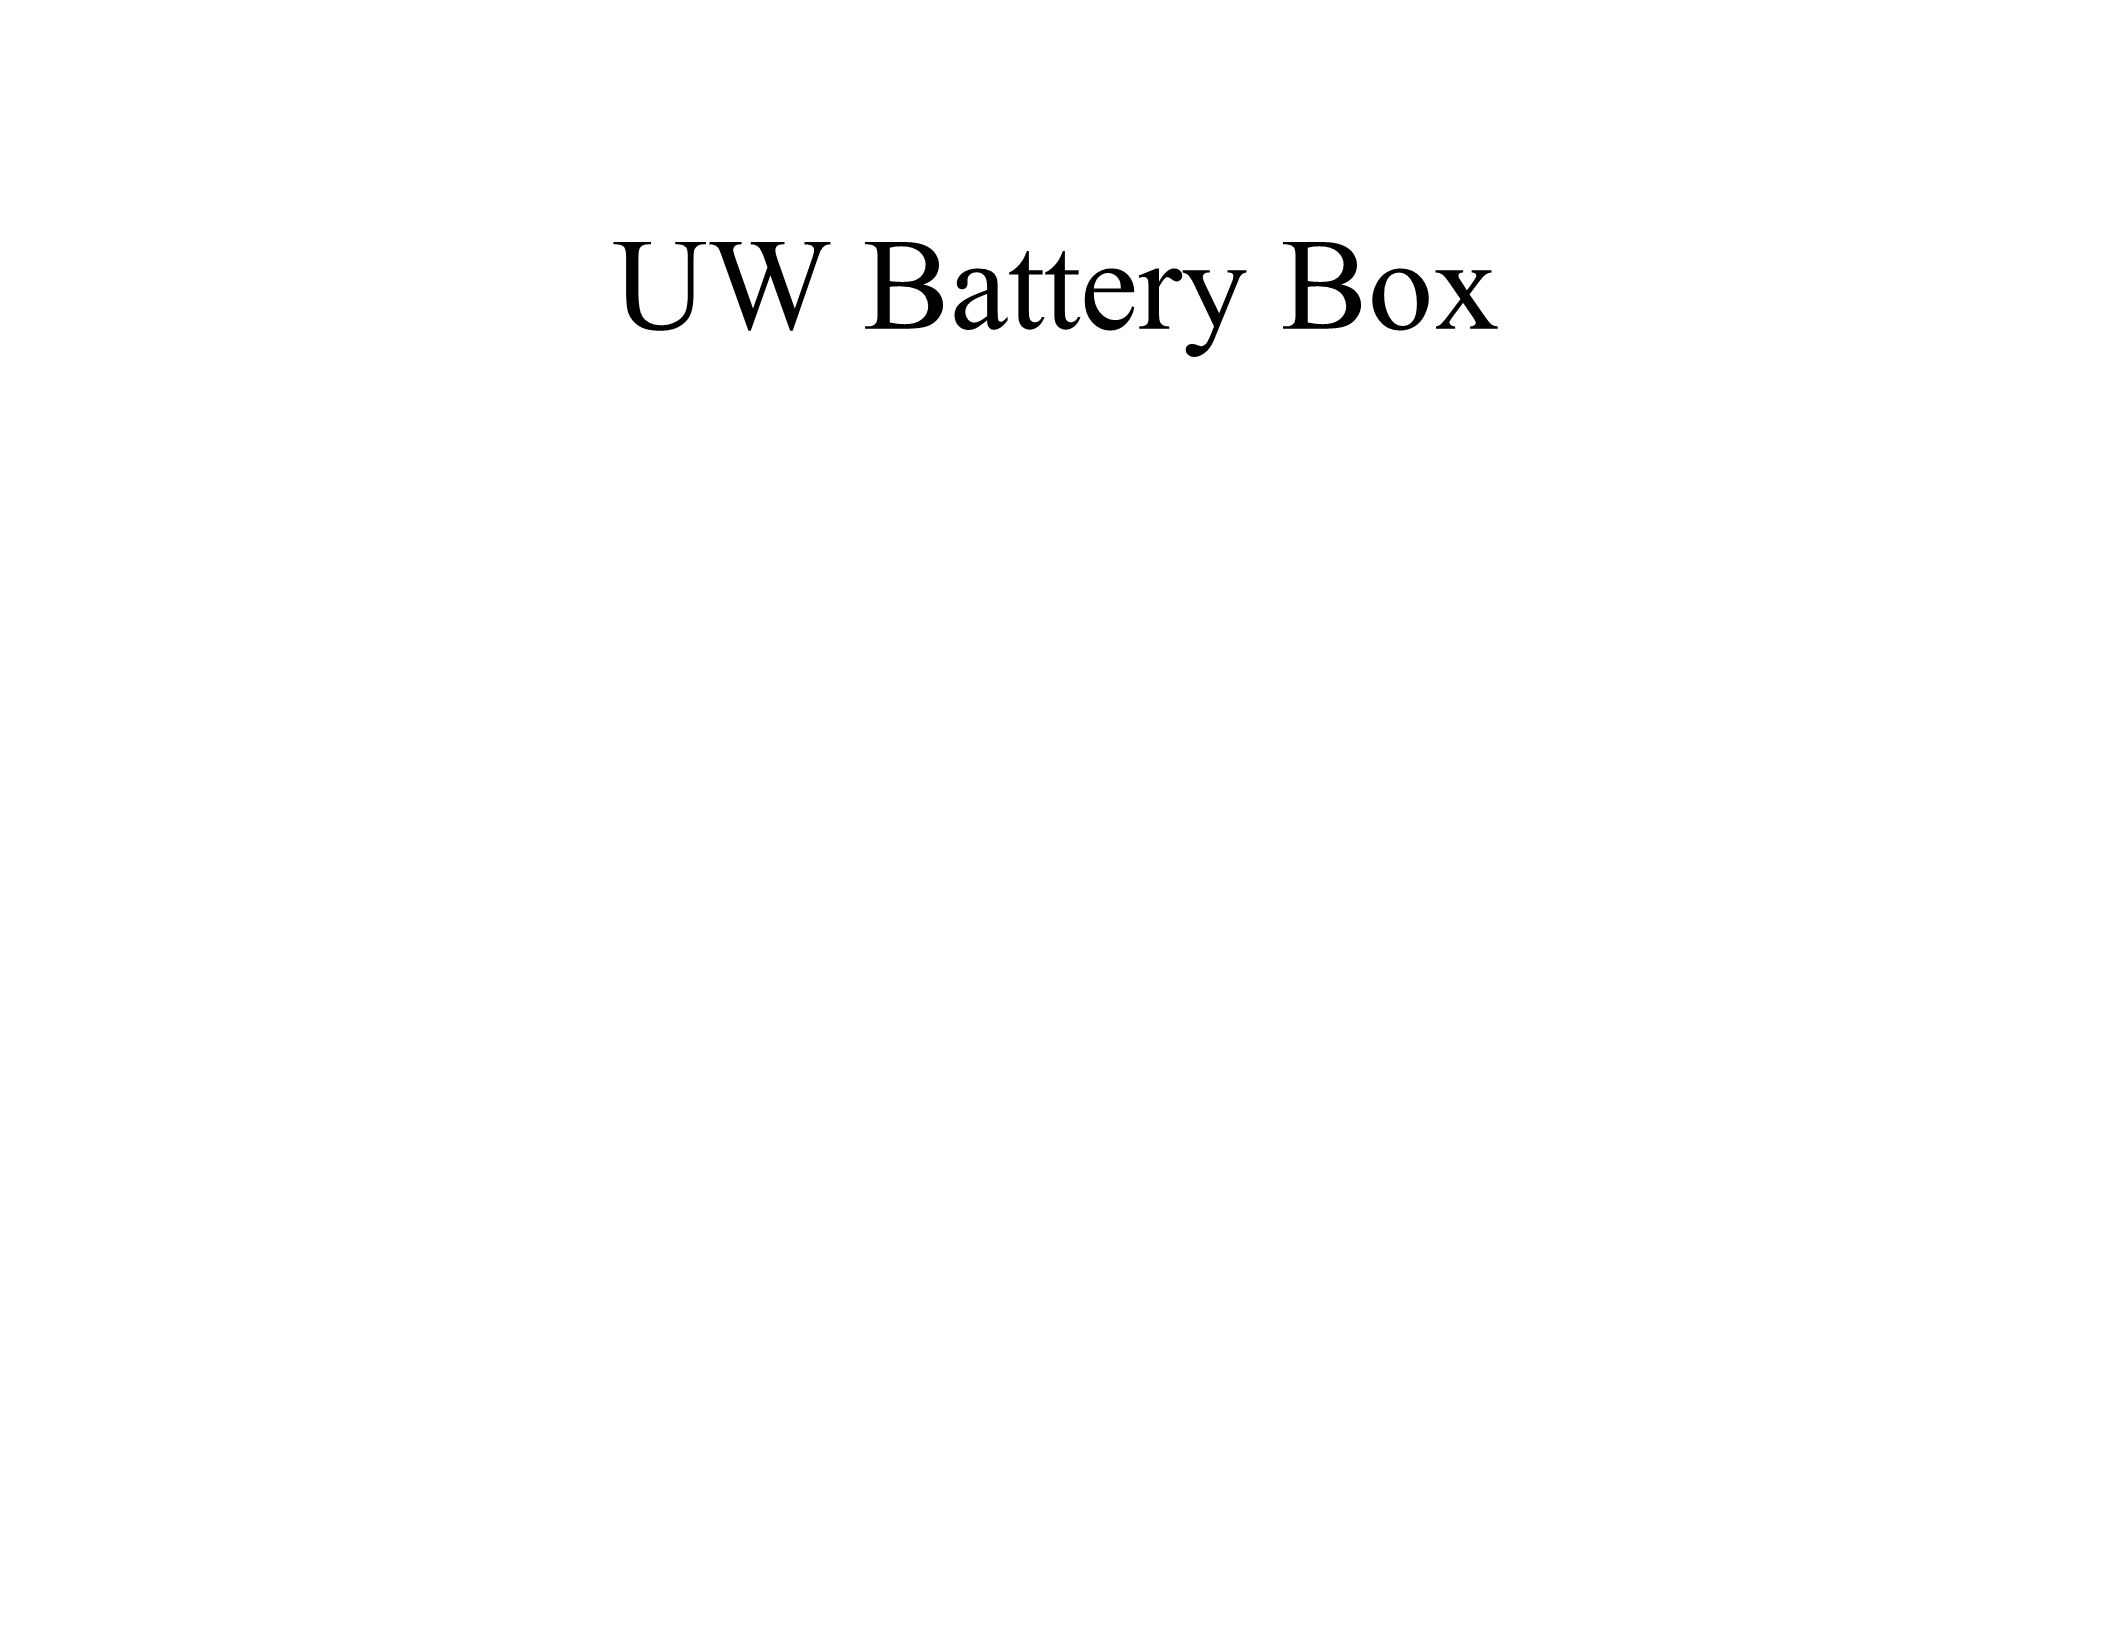 UW Battery Box